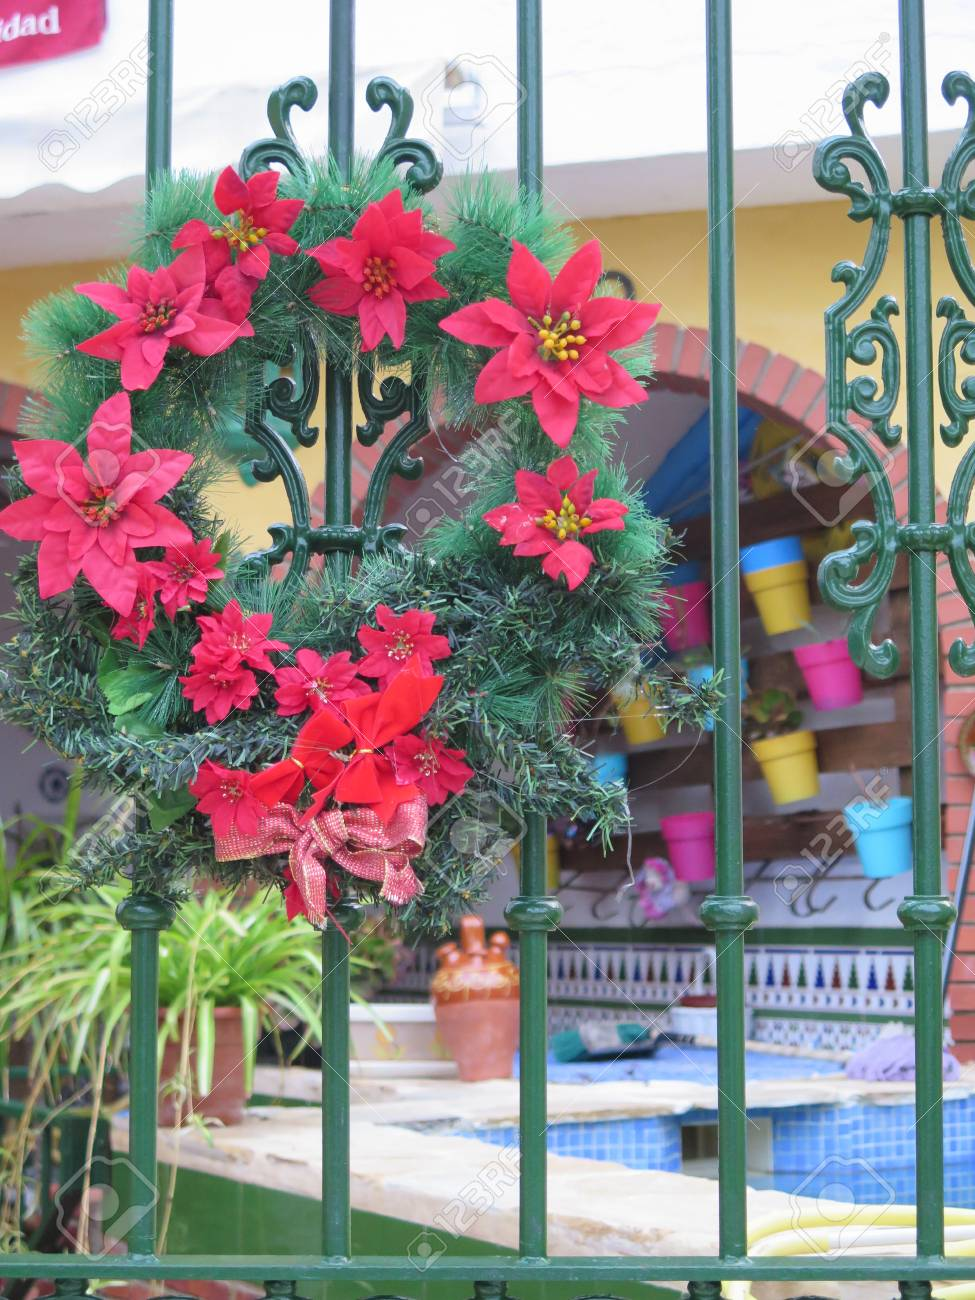 Christmas Wreath And Flowers On Garden Gate In Village Street ...